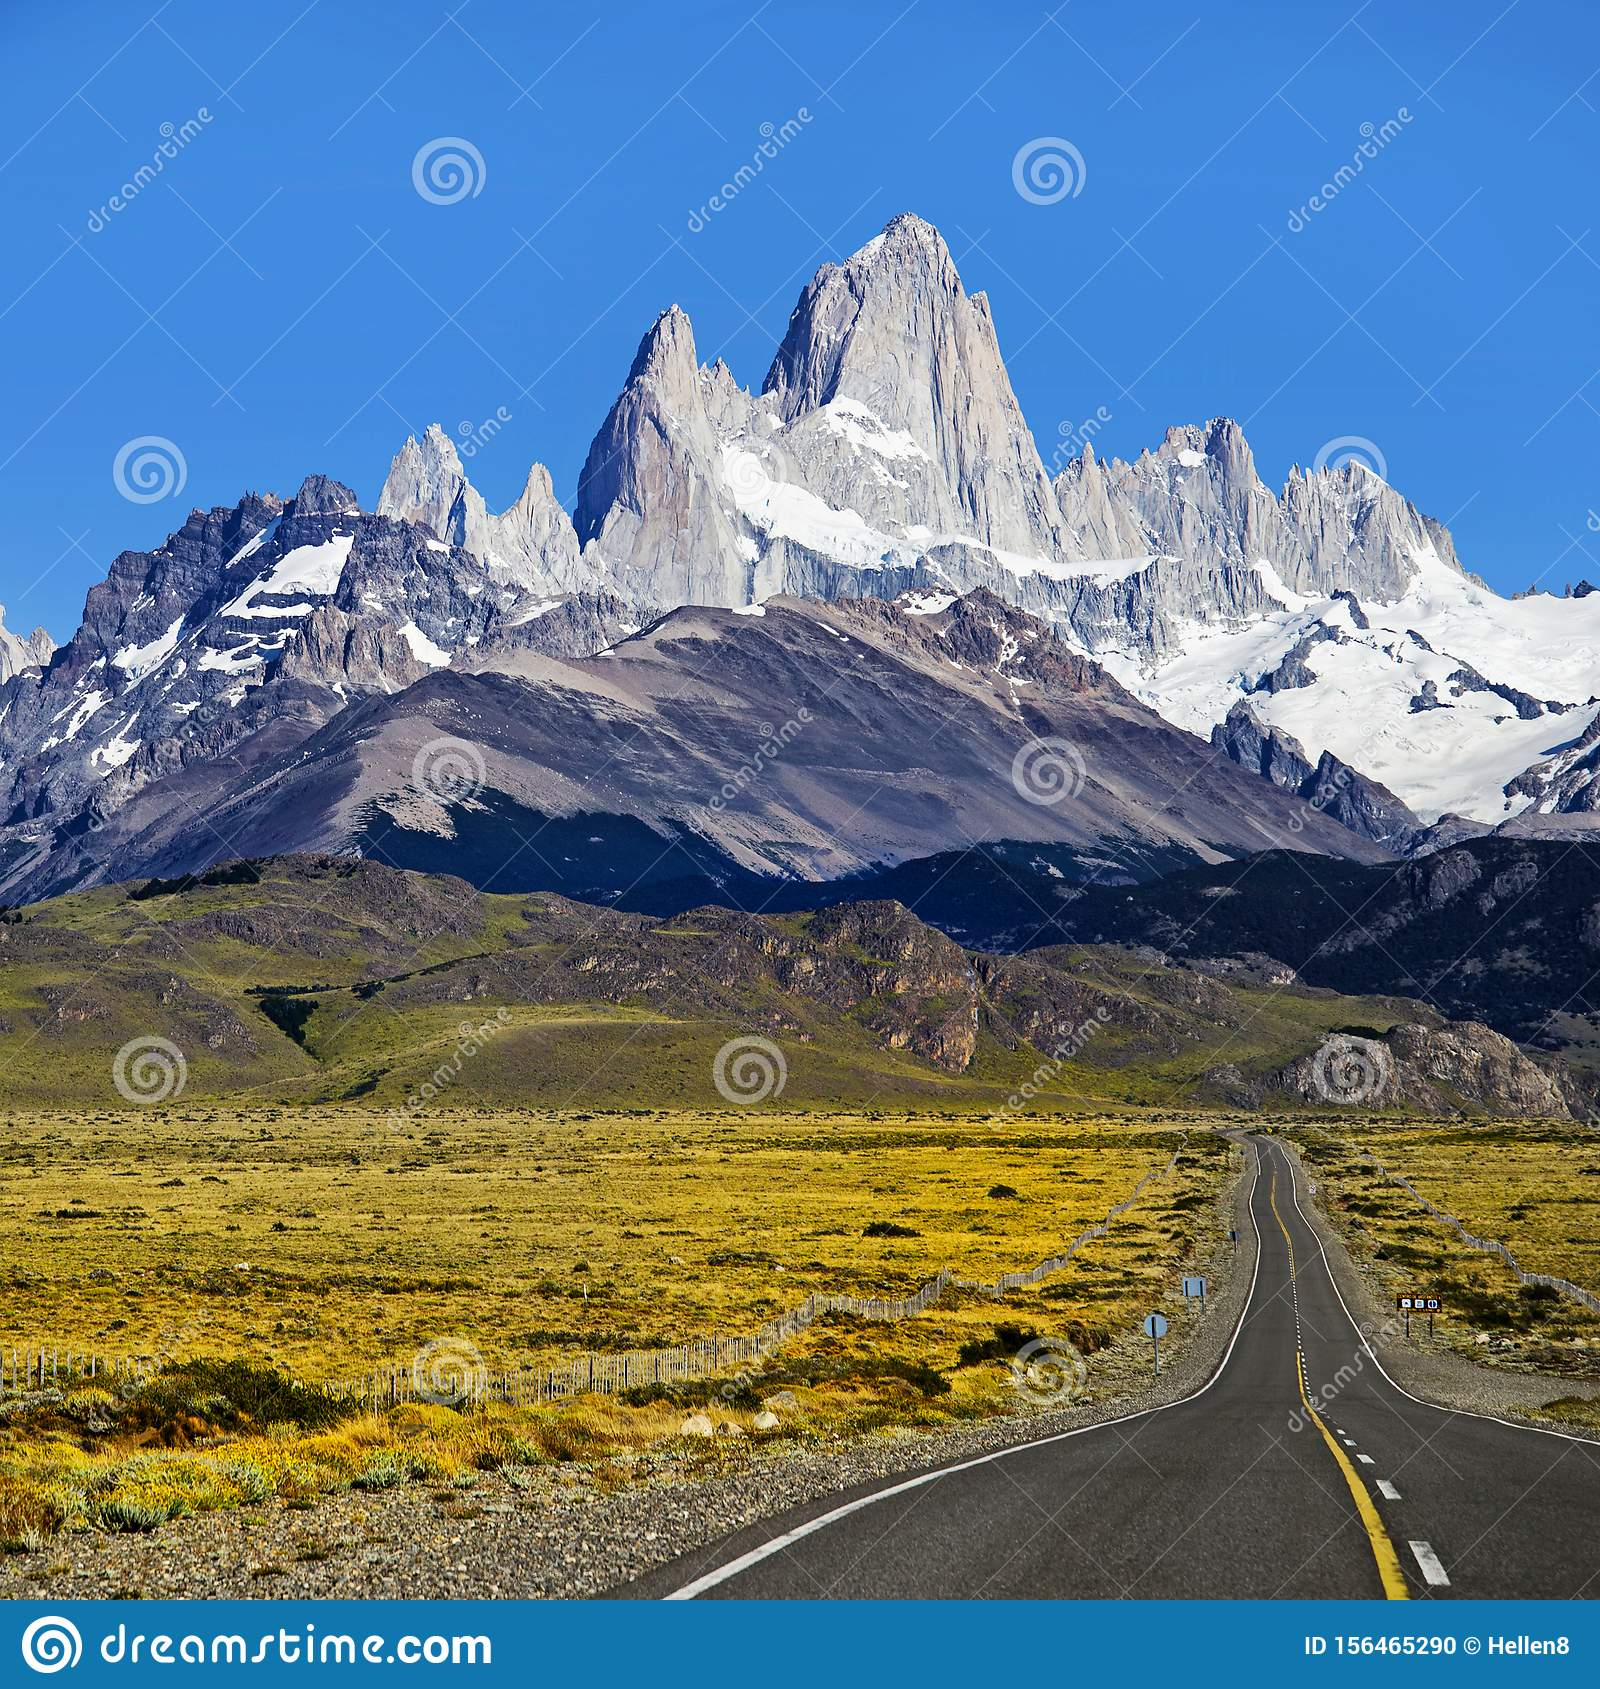 Patagonia South America >> Patagonia Mountains Argentina South America Stock Photo